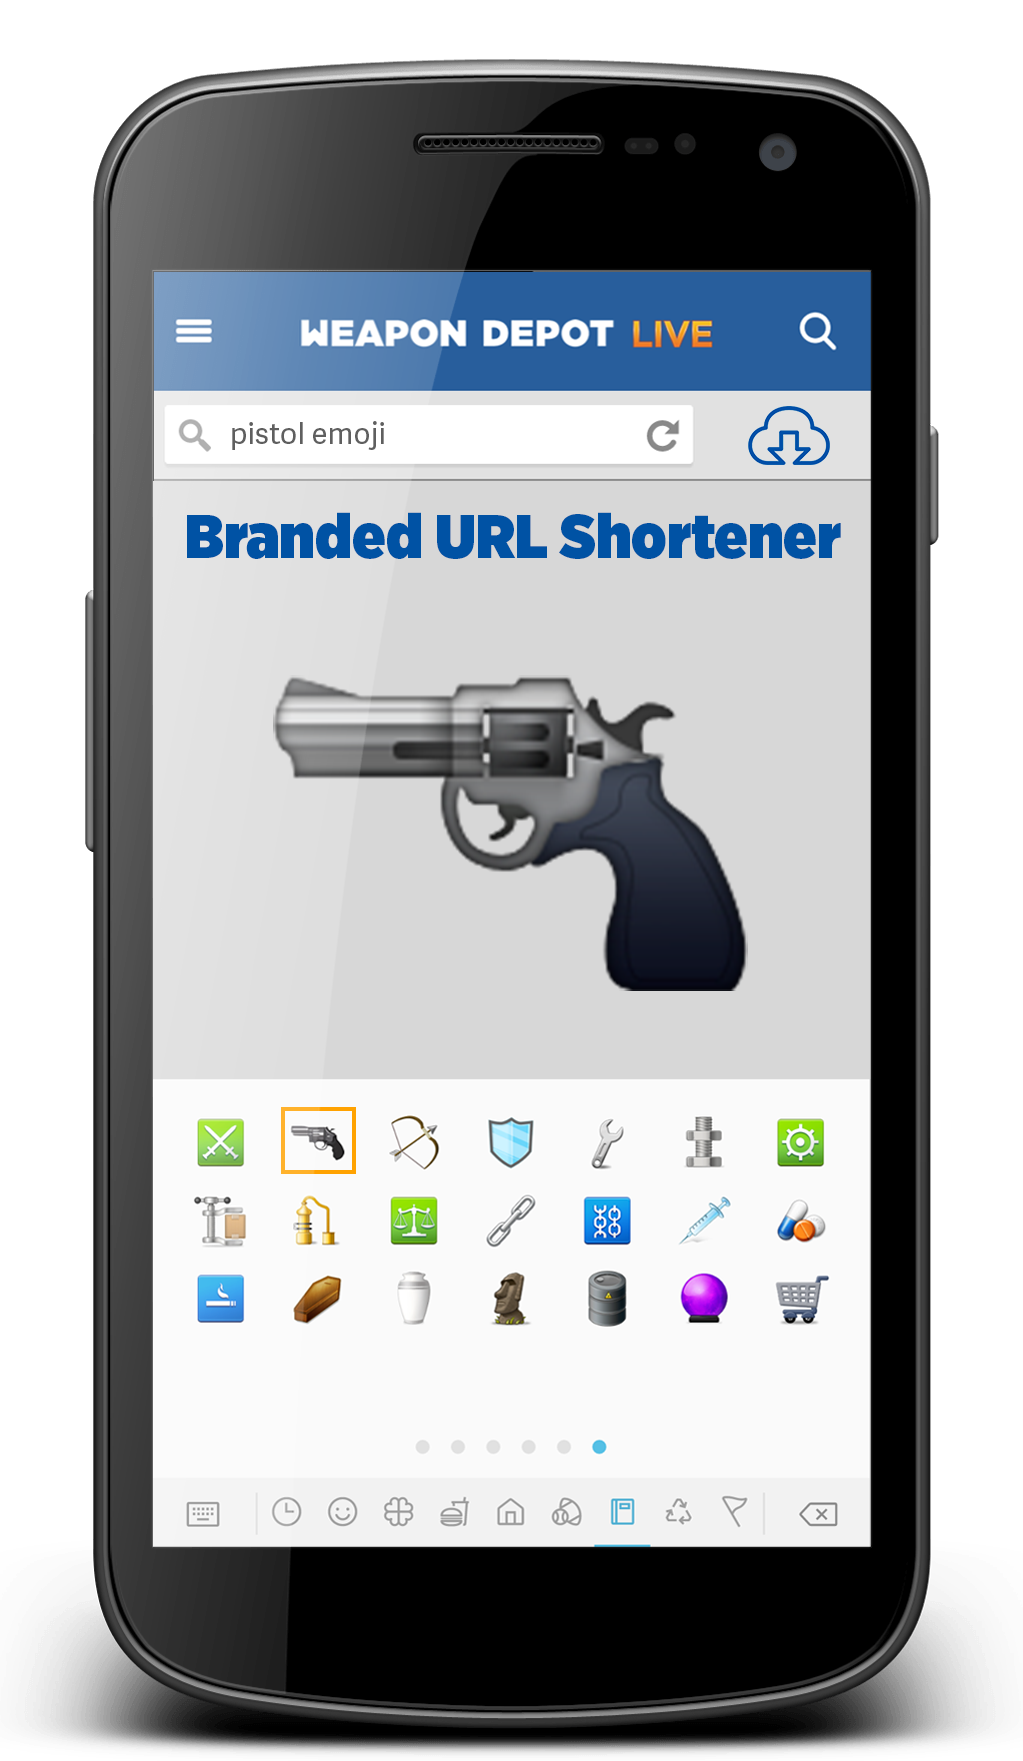 Pin By Weapon Depot On Emojis Emoji Pistol Electronic Products